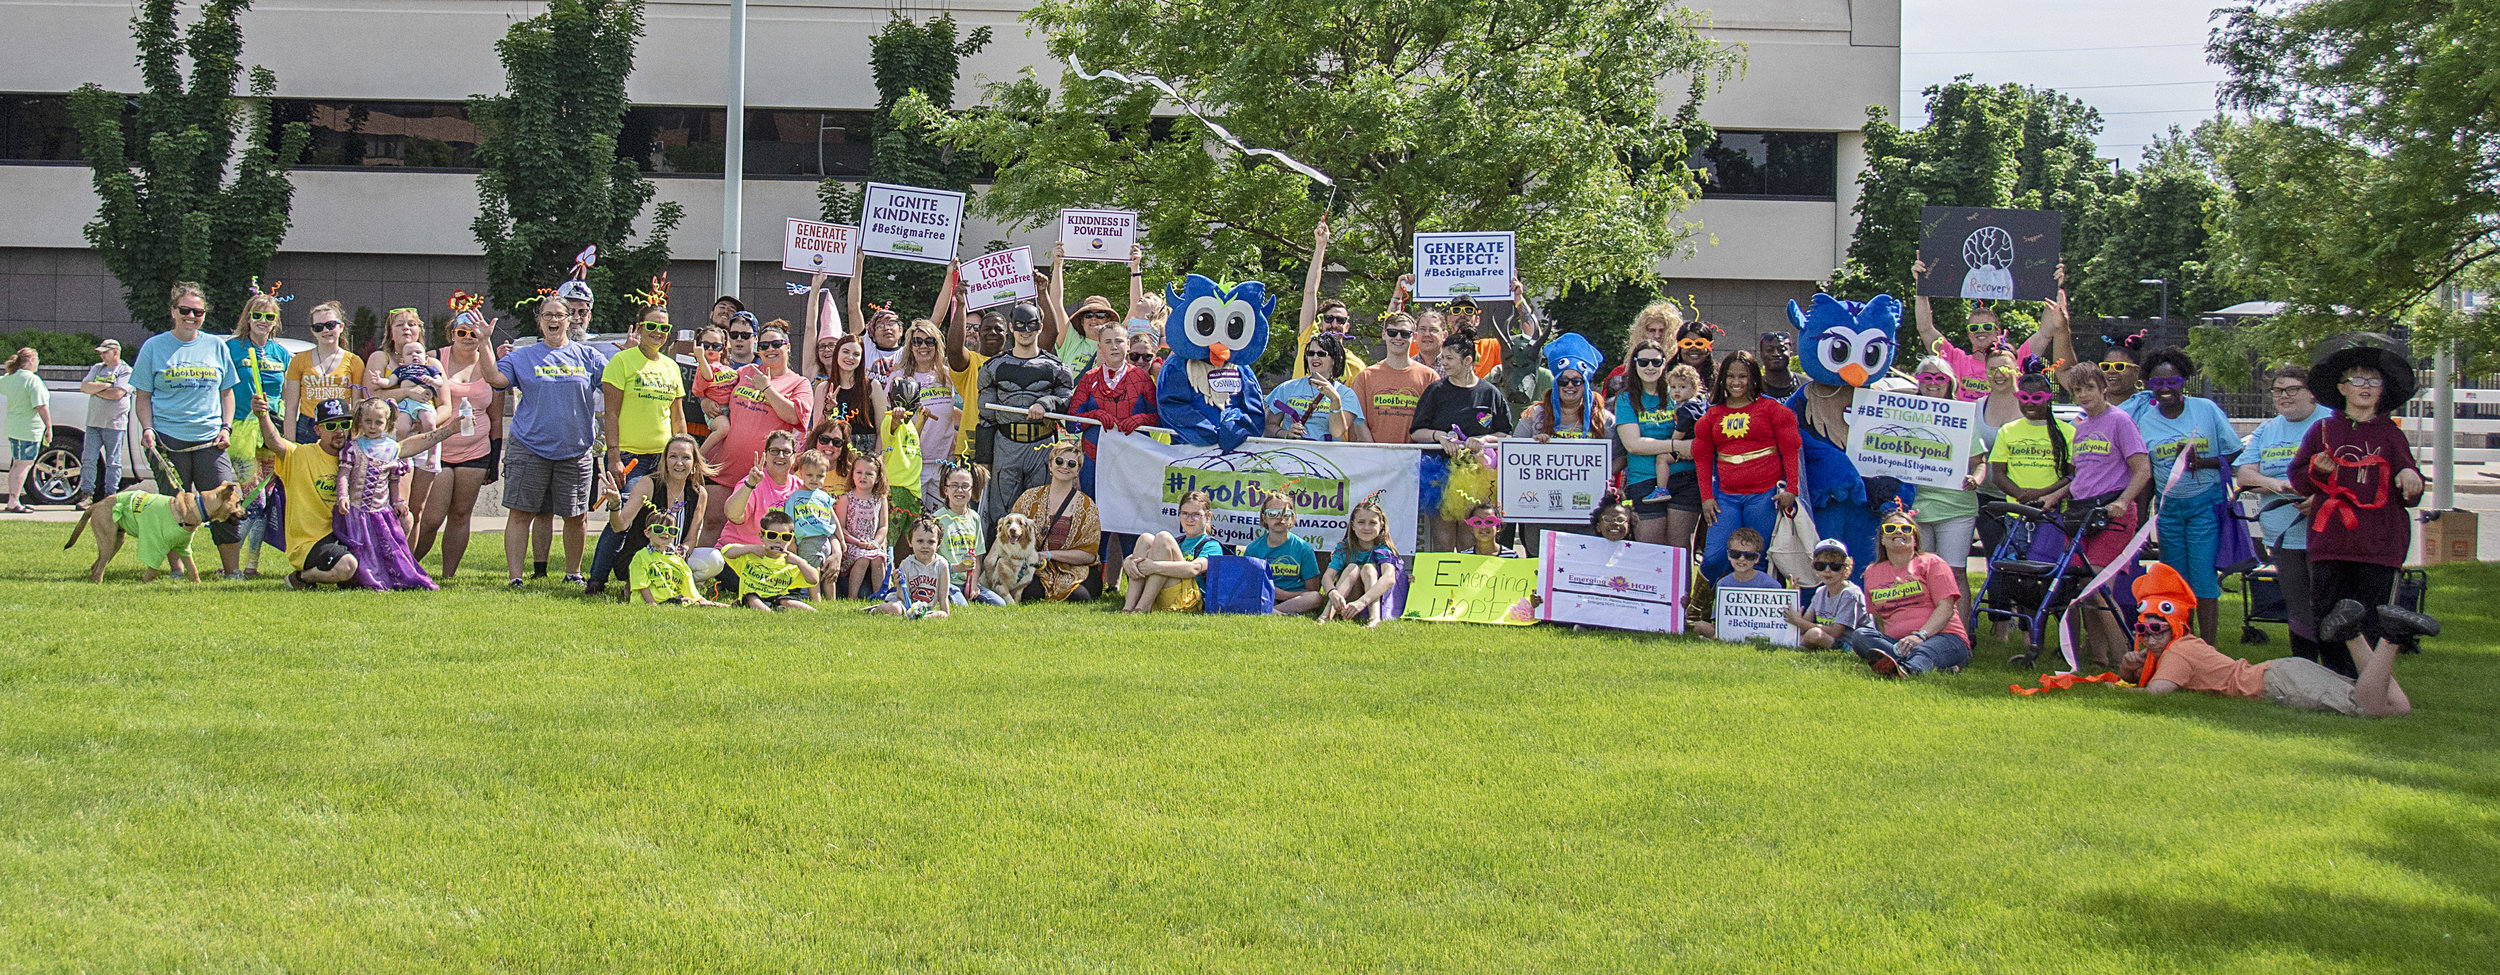 """Our marchers were """"Wired to #BeStigmaFree"""" at the Do-Dah Parade in June."""